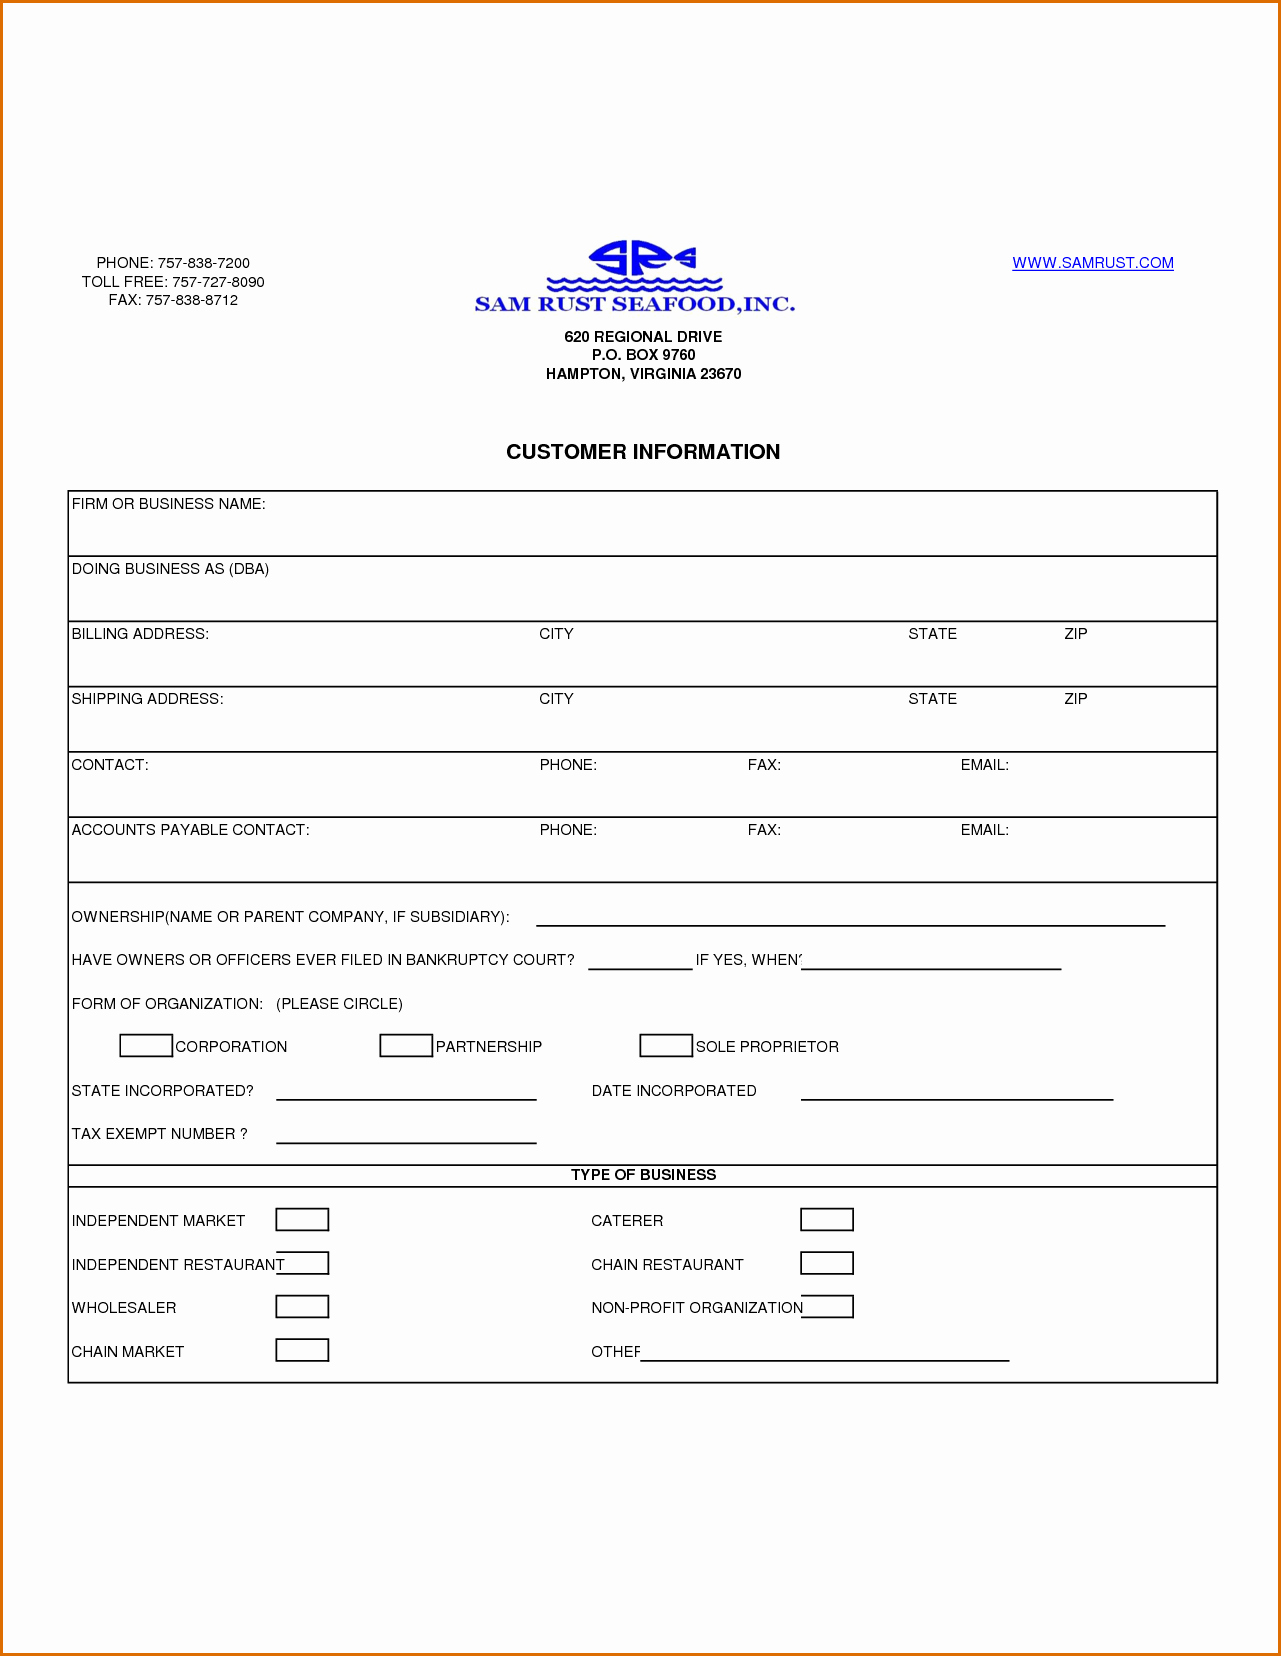 Contact Information form Template New 13 Customer Information form Template